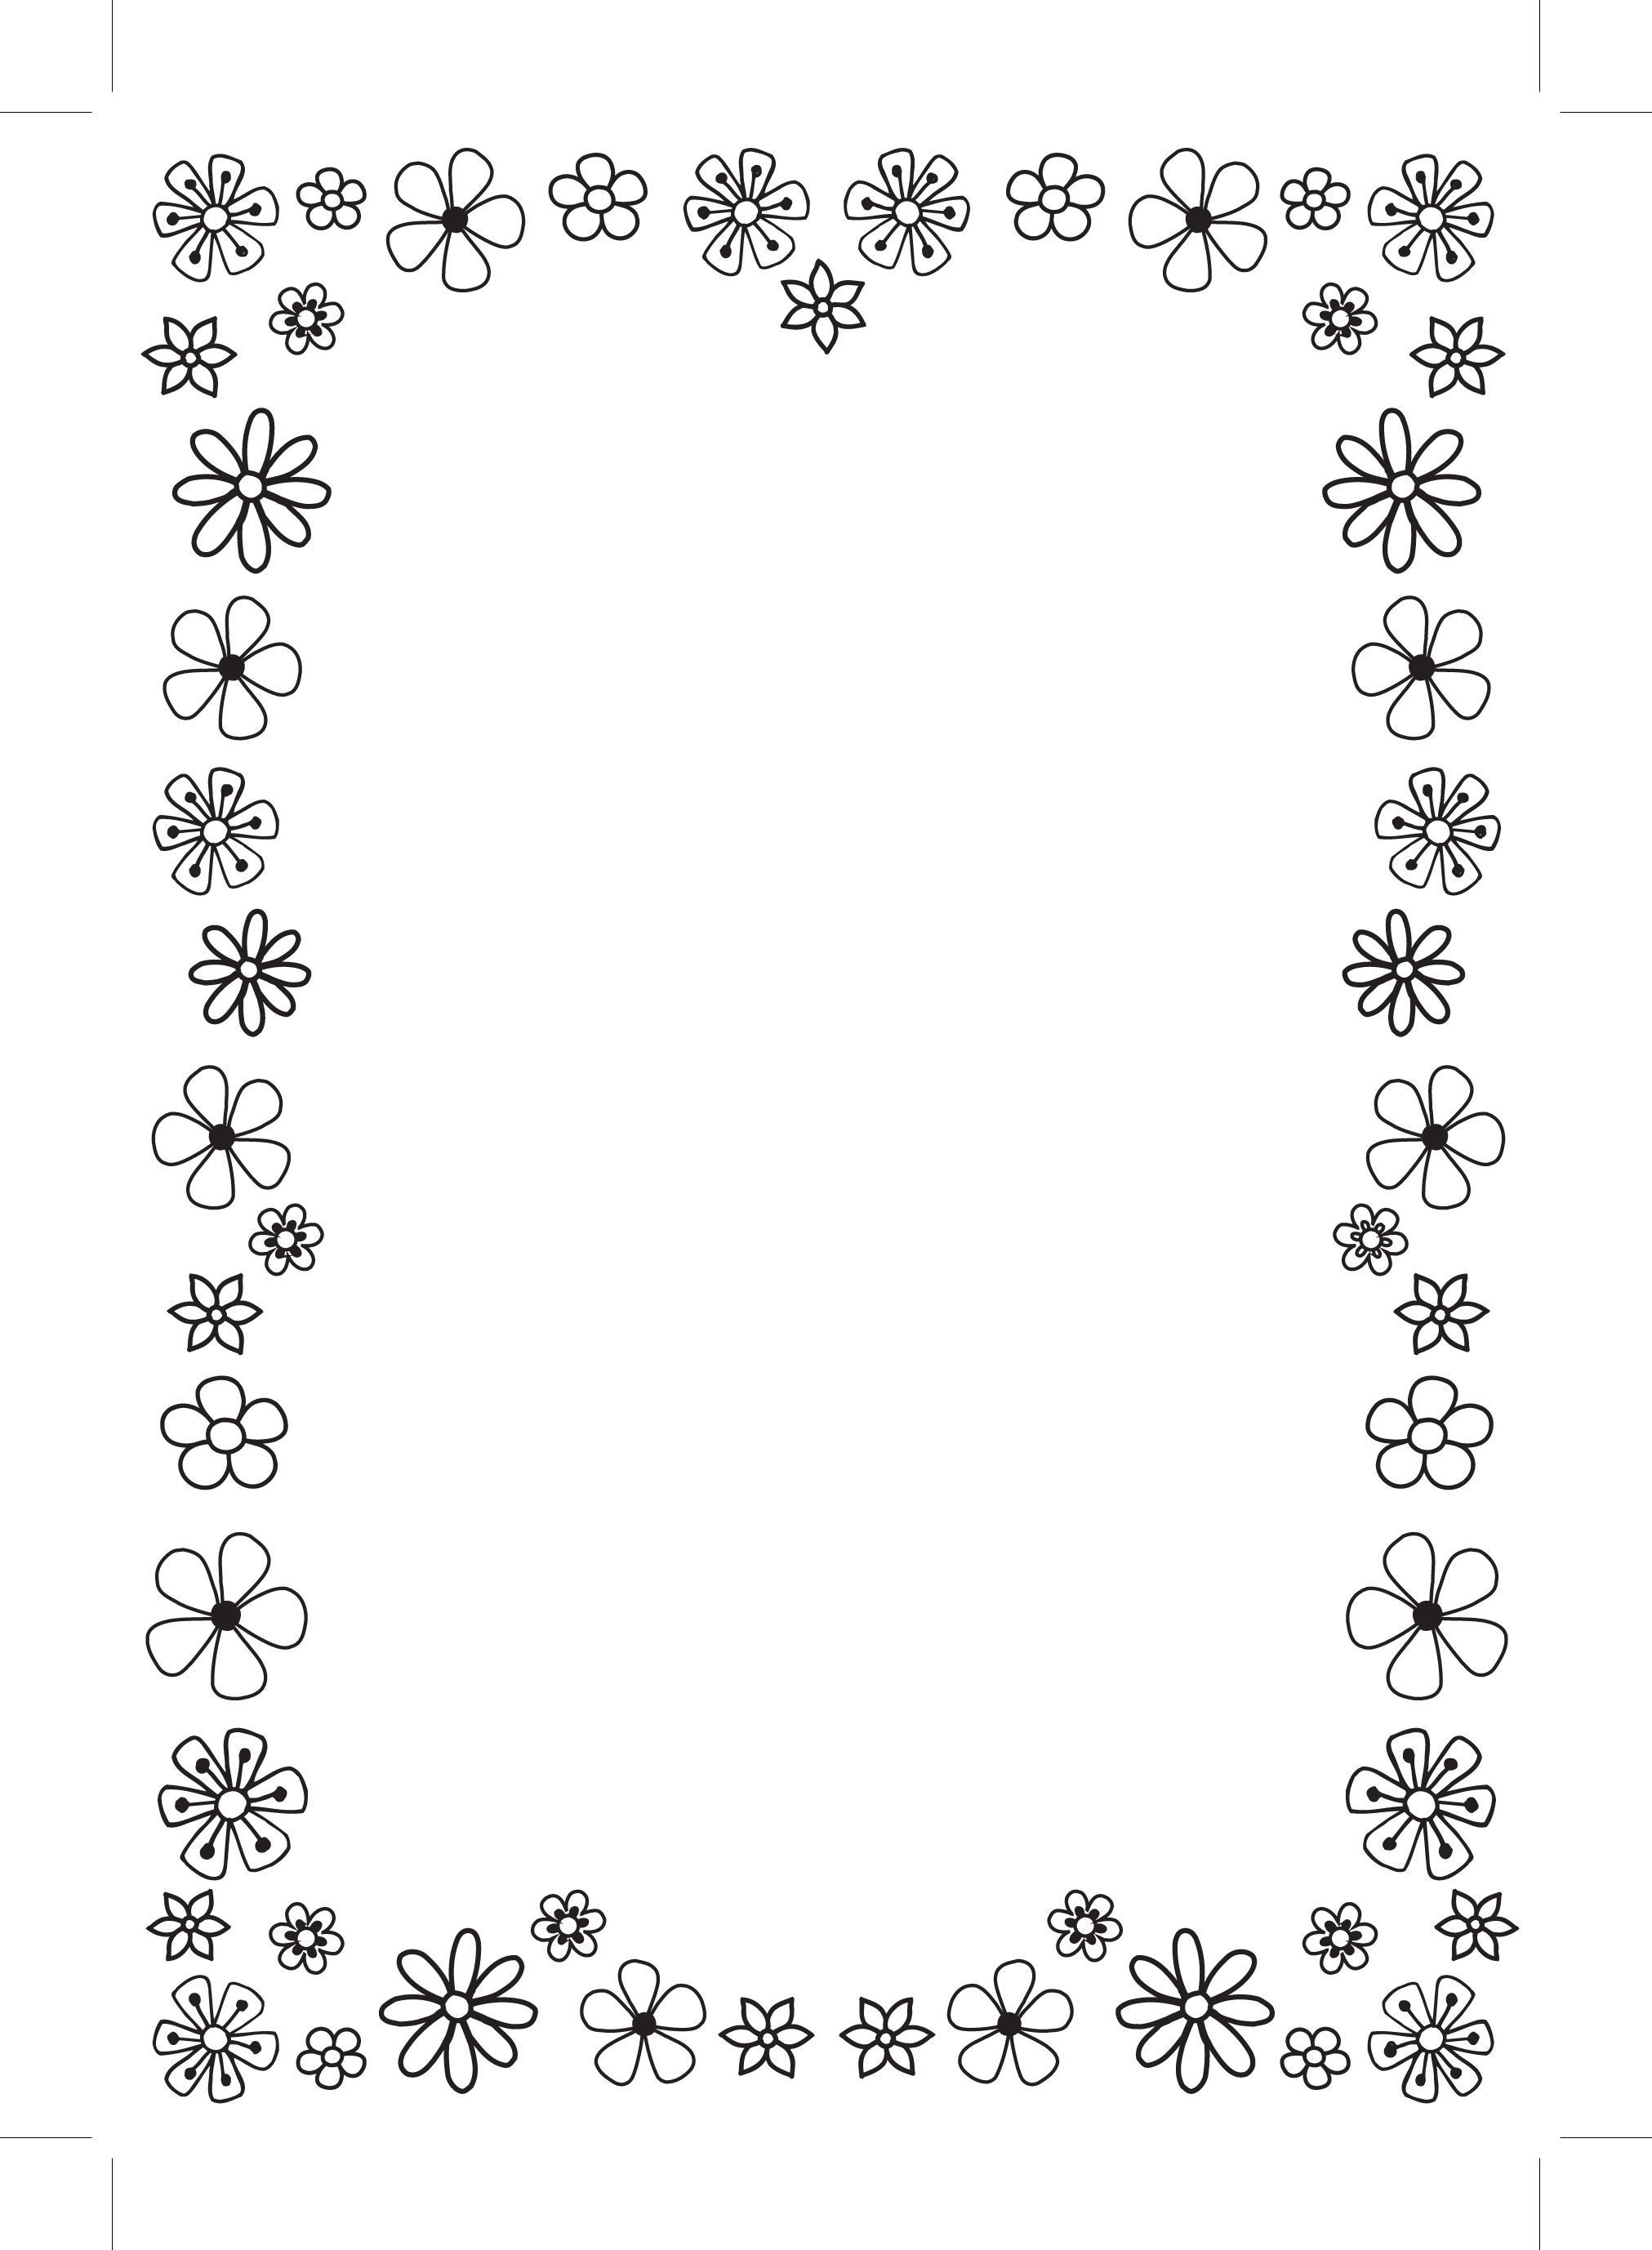 Simple Flower Border Designs For A4 Paper